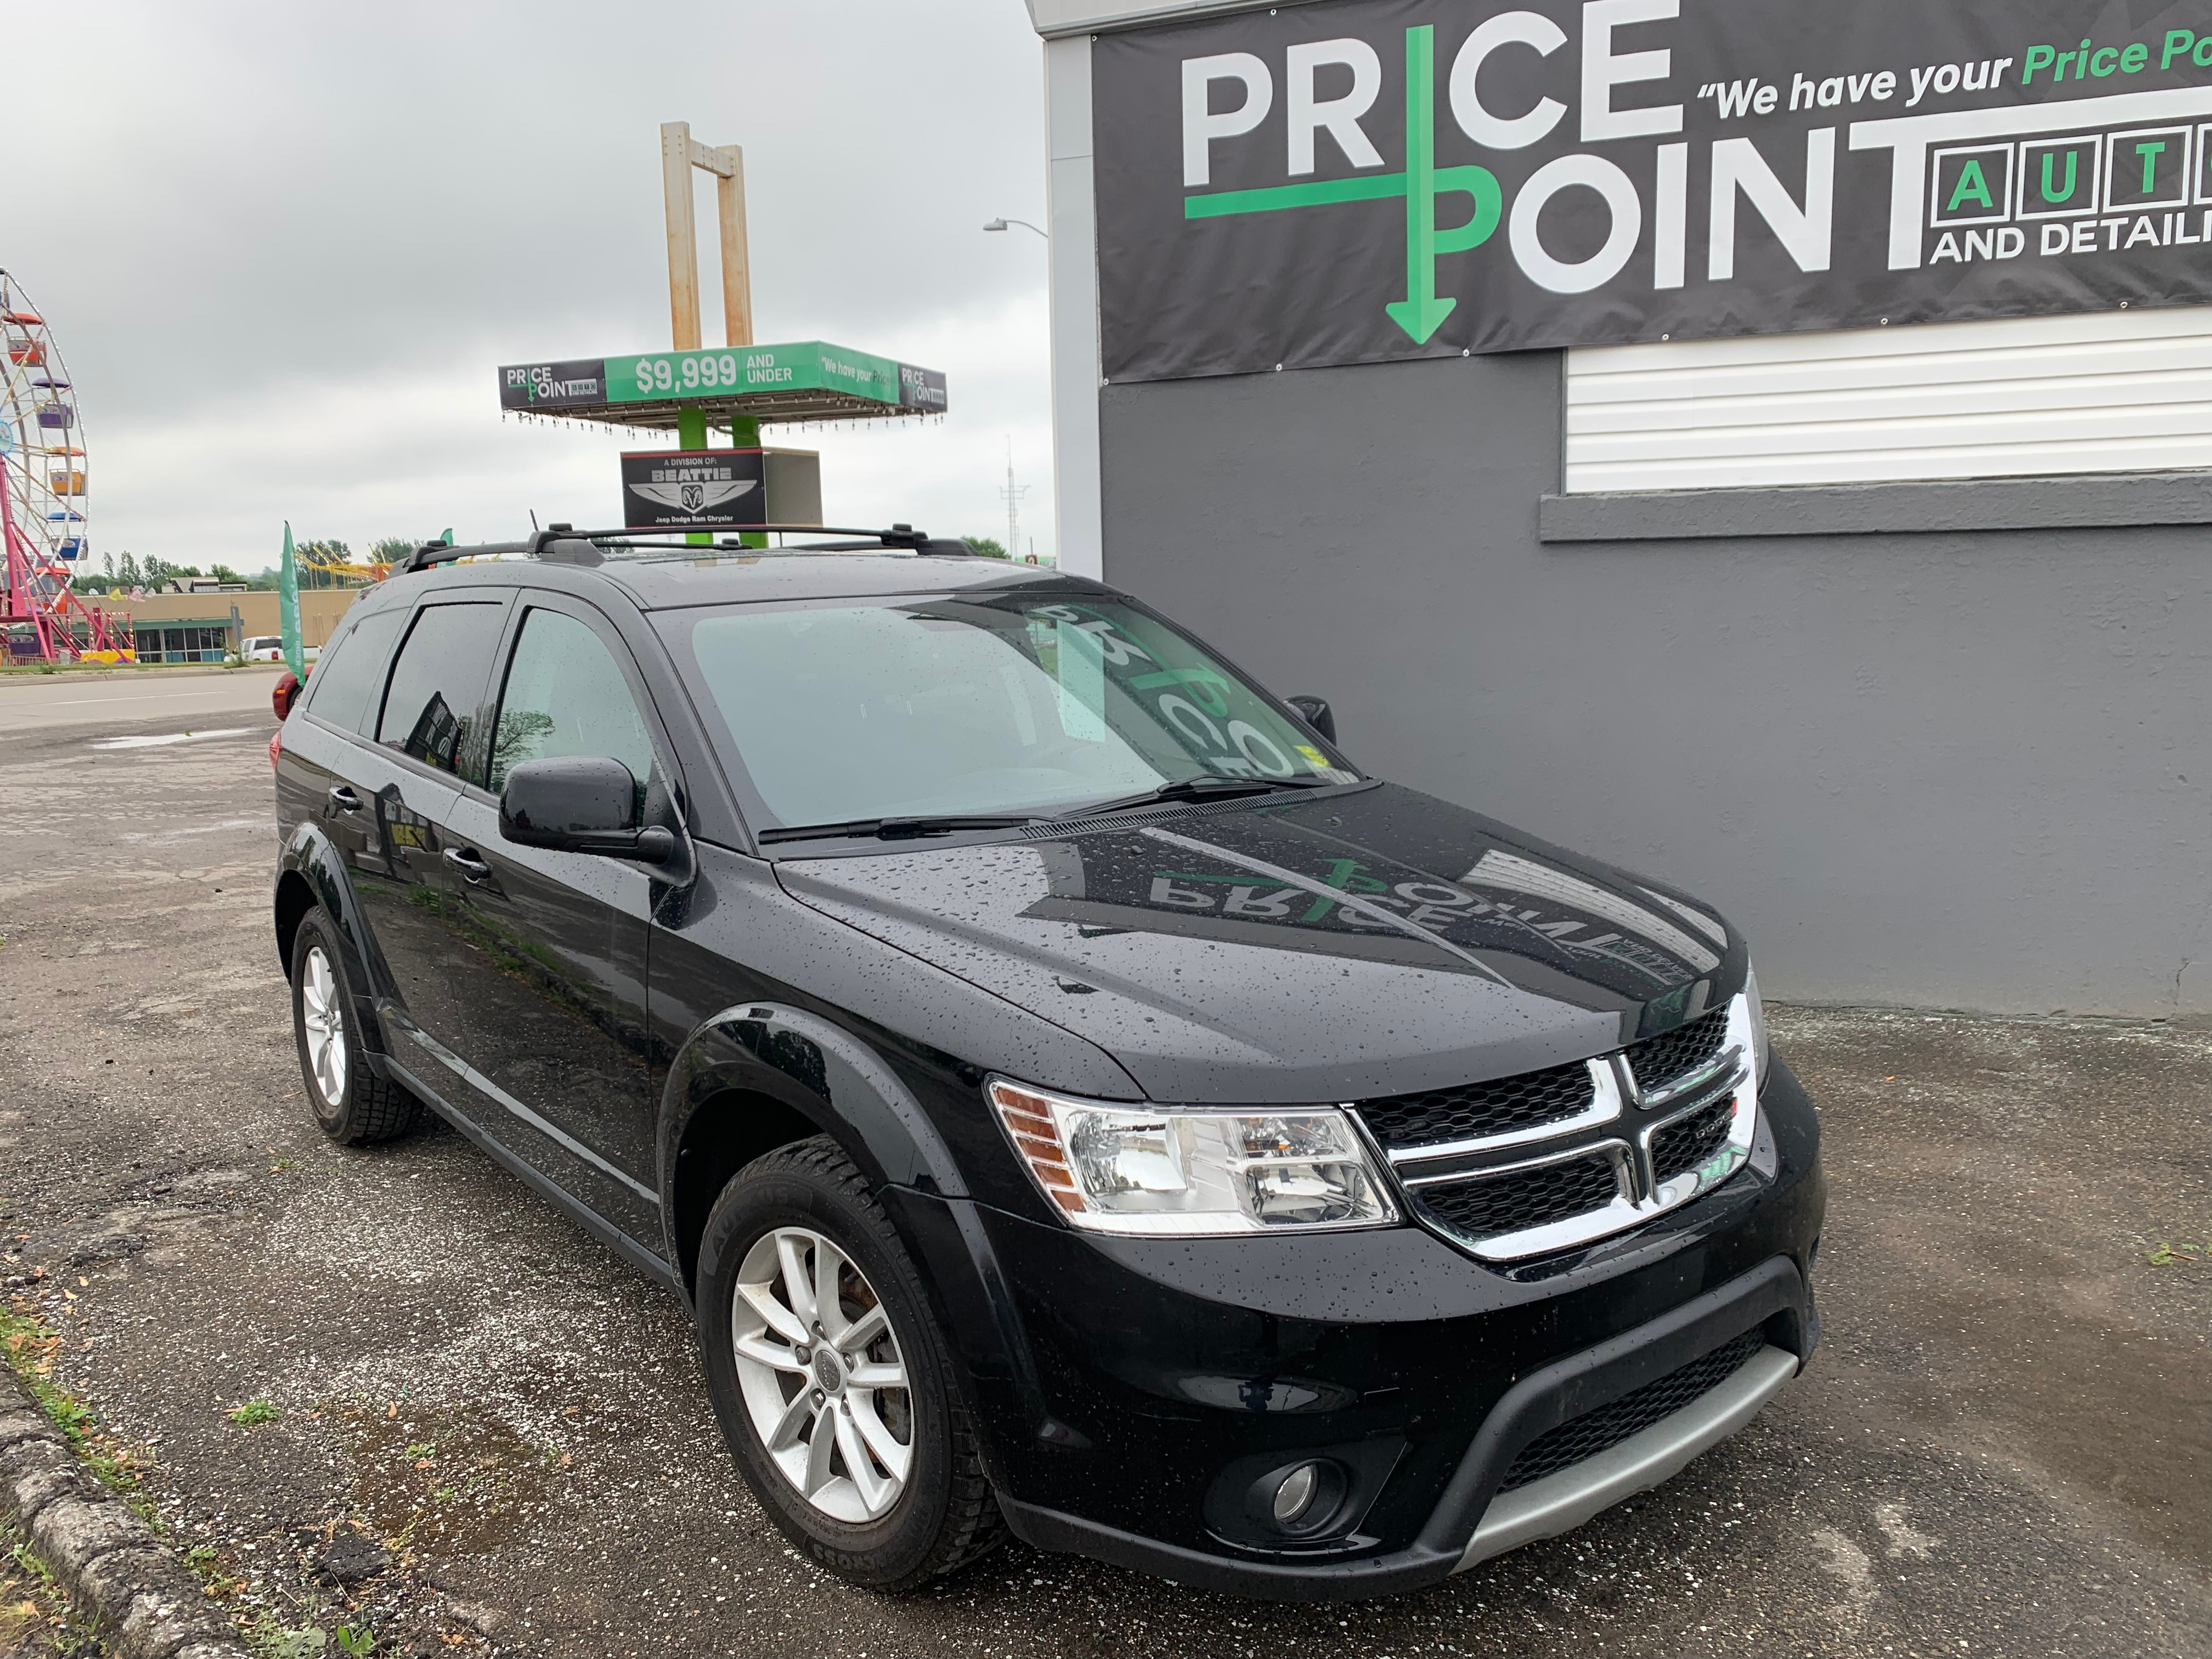 Used Cars For Sale By Private Owner Under 1500 >> Used 2016 Dodge Journey For Sale At Beattie Dodge Chrysler Jeep Ltd Vin 3c4pdccb9gt182571